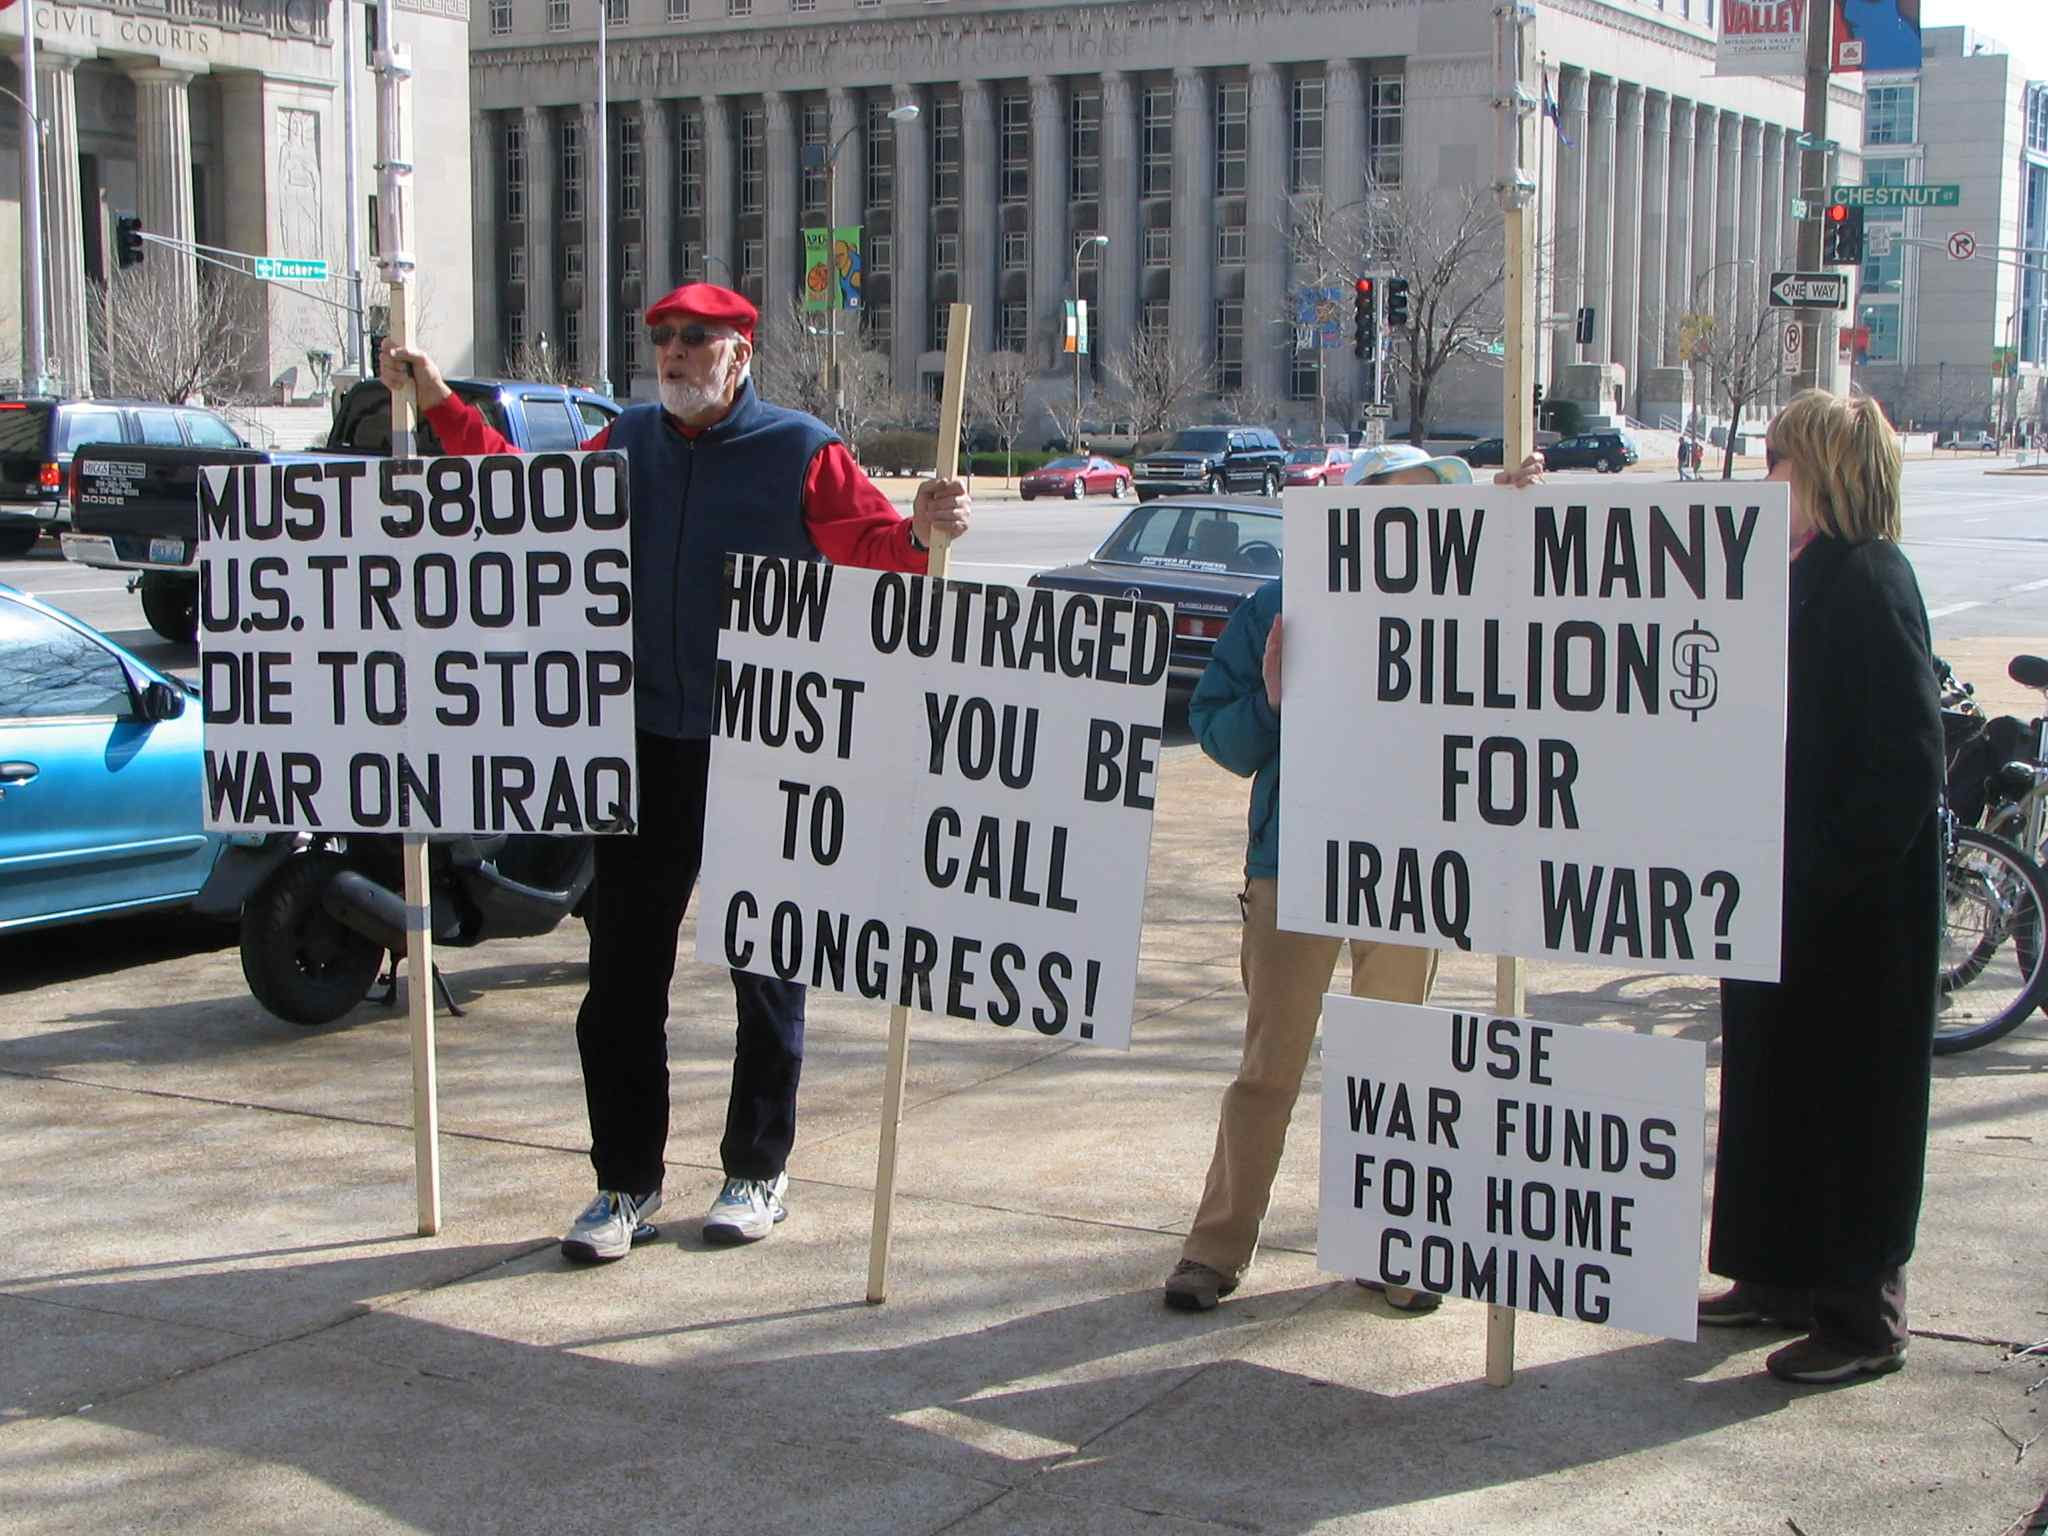 The Iraq invasion has cost more than one trillion dollars.  How much is one trillion?